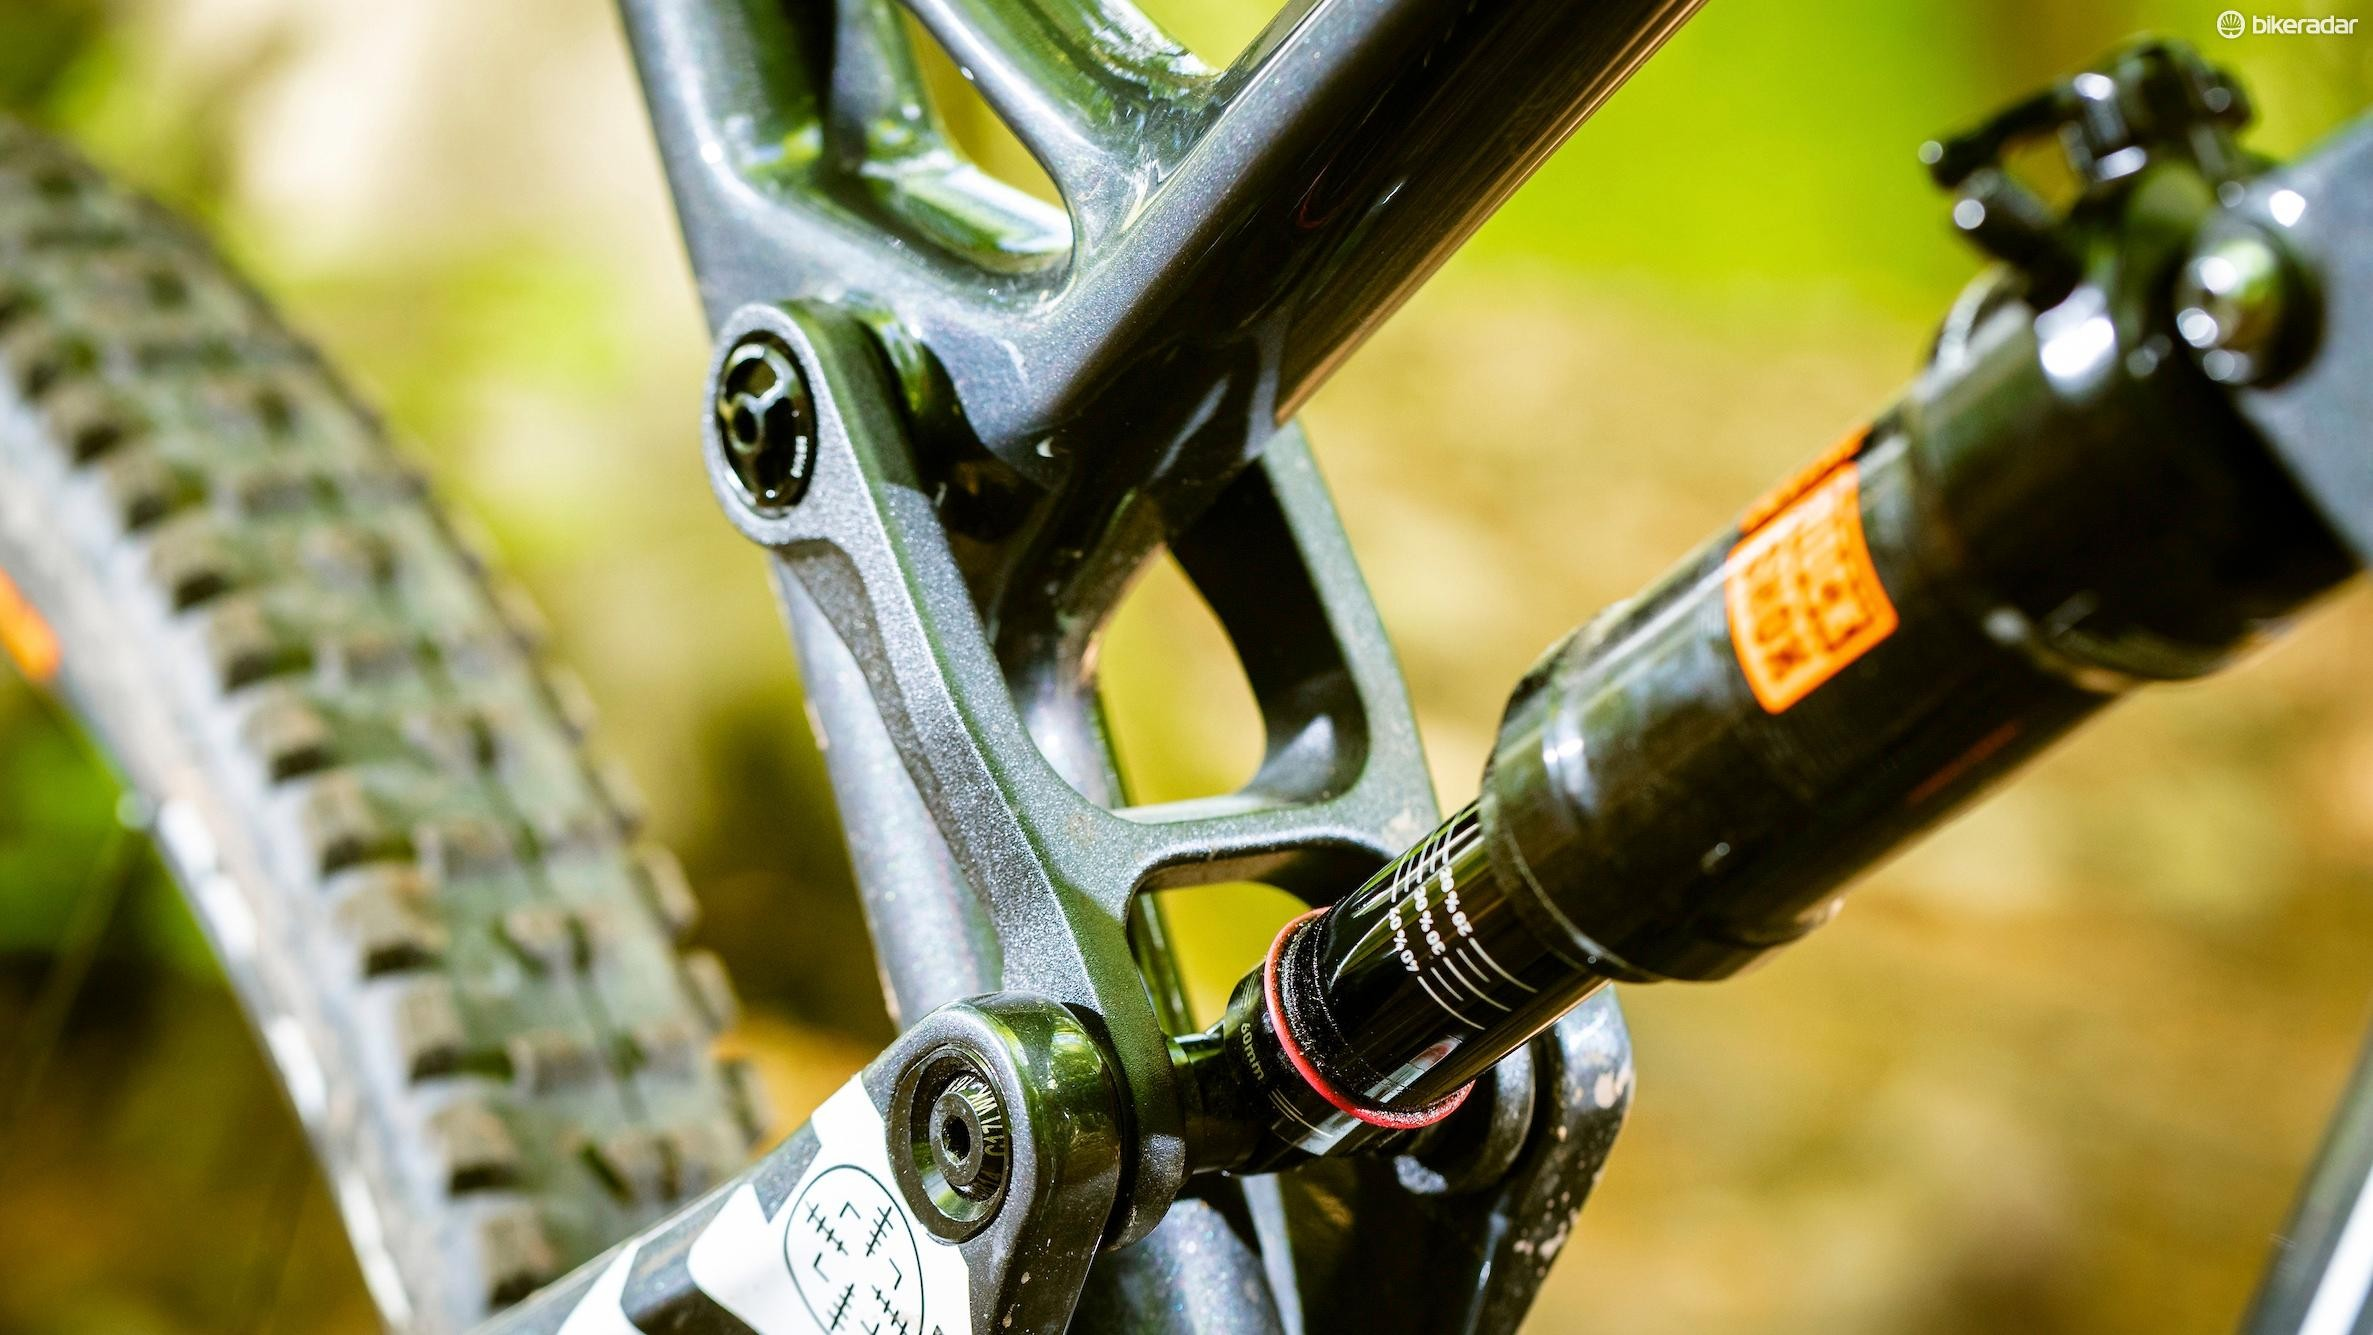 Intense's JS Link suspension, here in its 'Enduro' format provides a decent pedalling platform and a playful ride